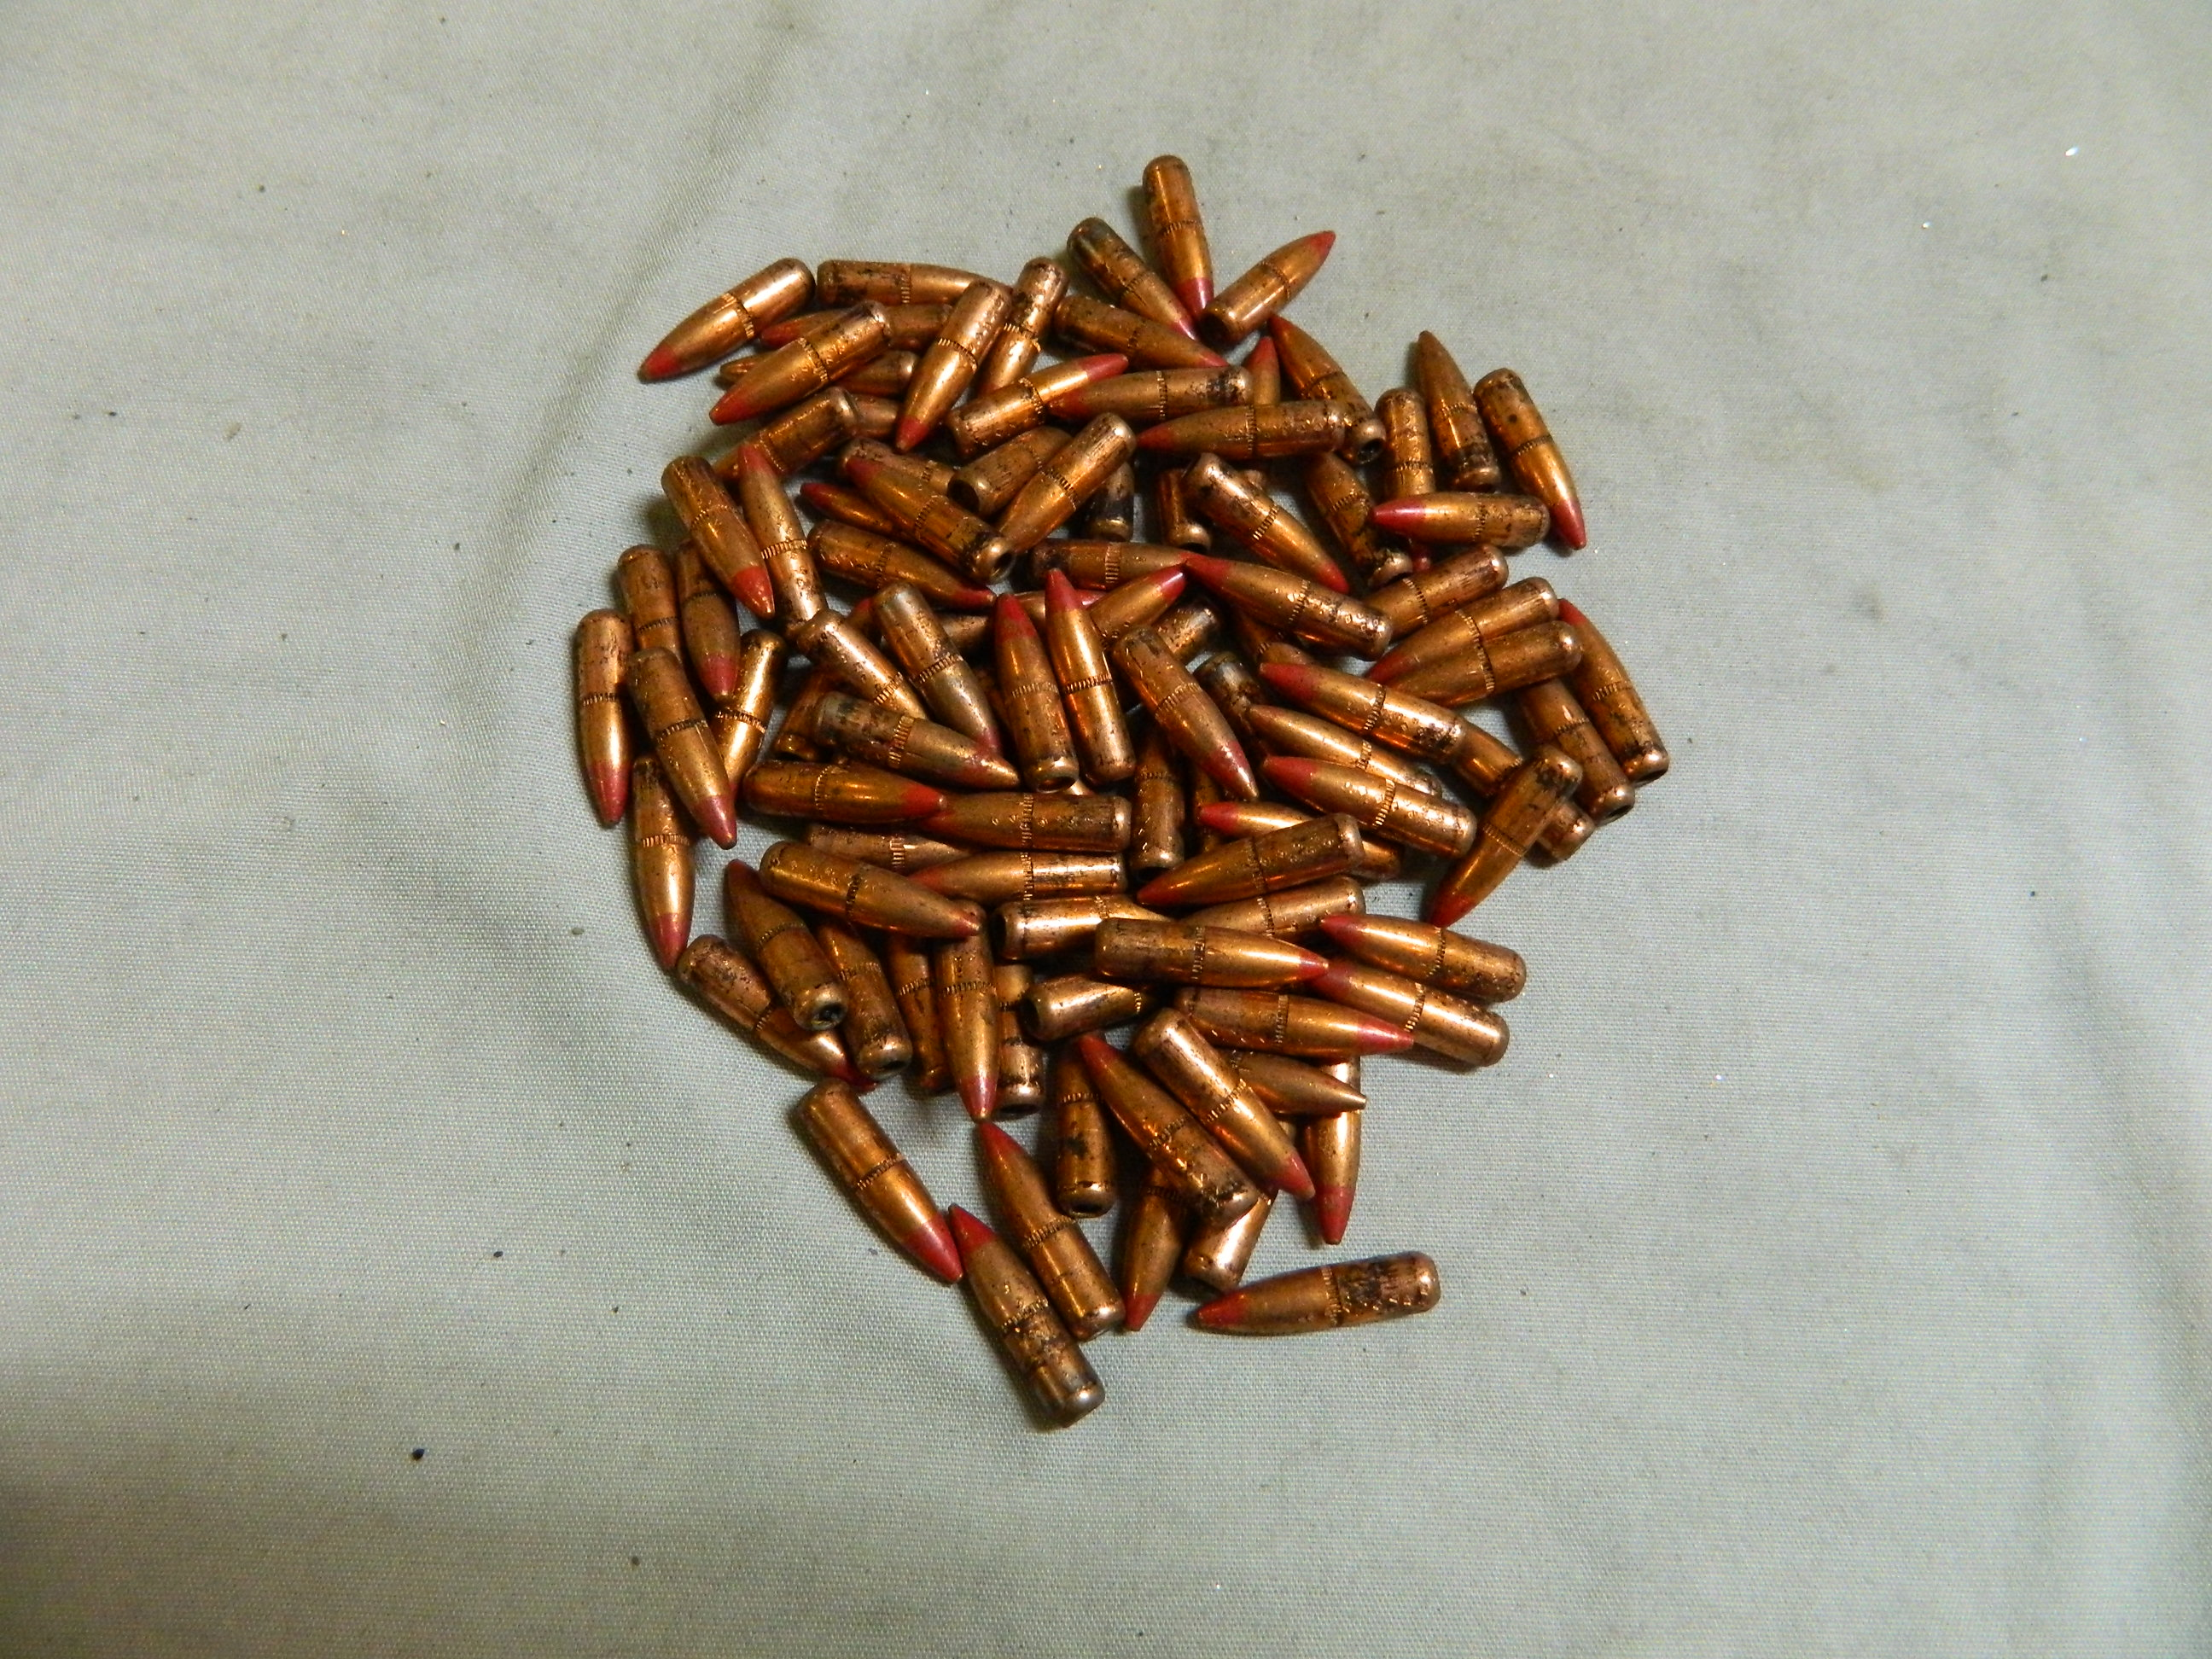 223 Cal.- 55gr Tracer Bullets- 100 Ct. Pulled